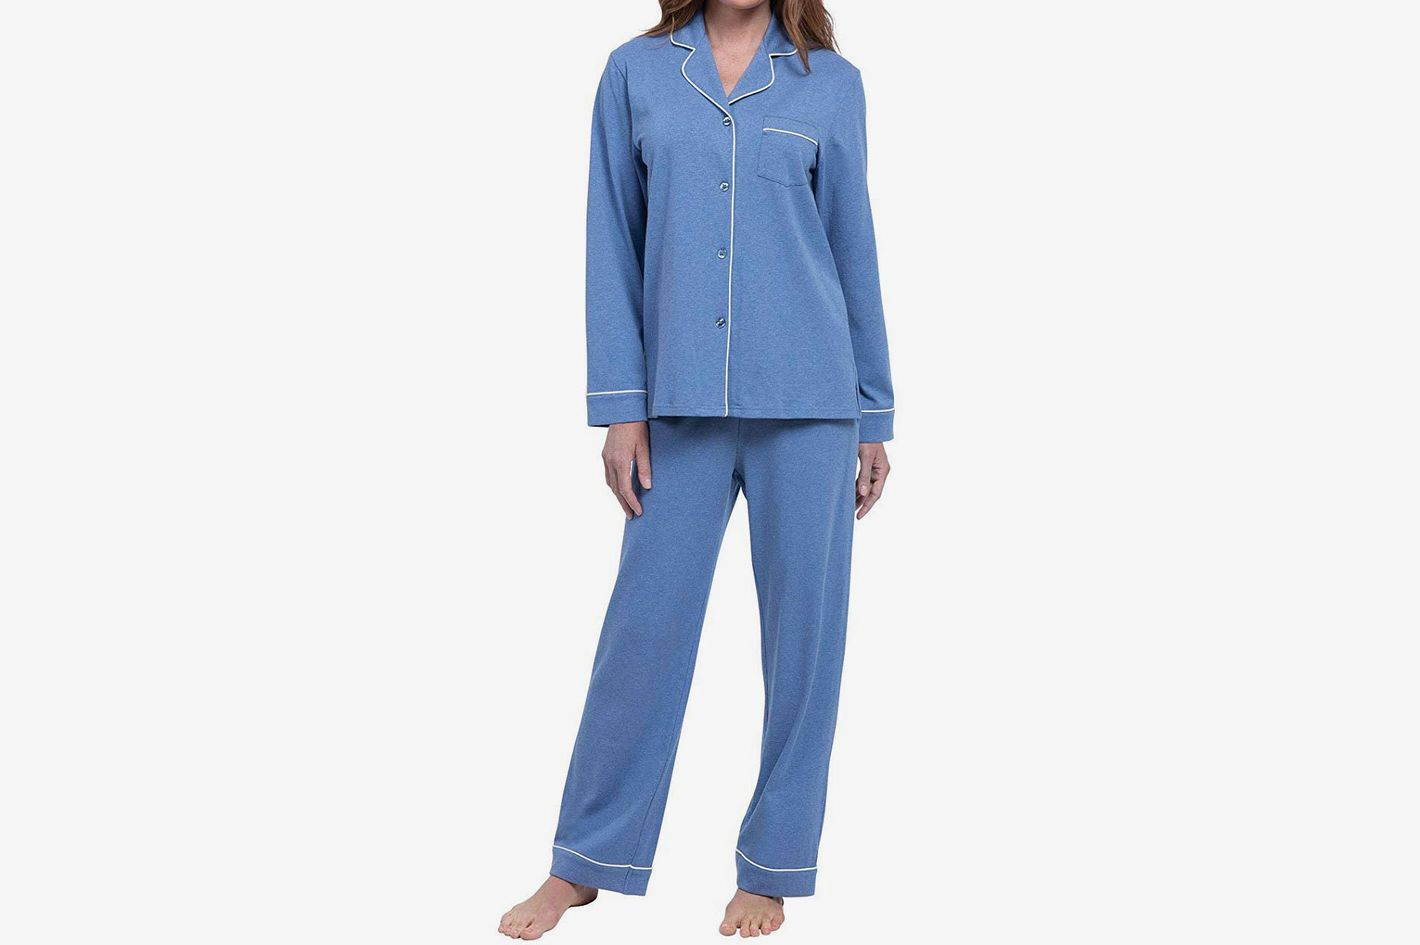 2183bad350bf PajamaGram Pajamas for Women - Cotton Jersey Womens Pajamas